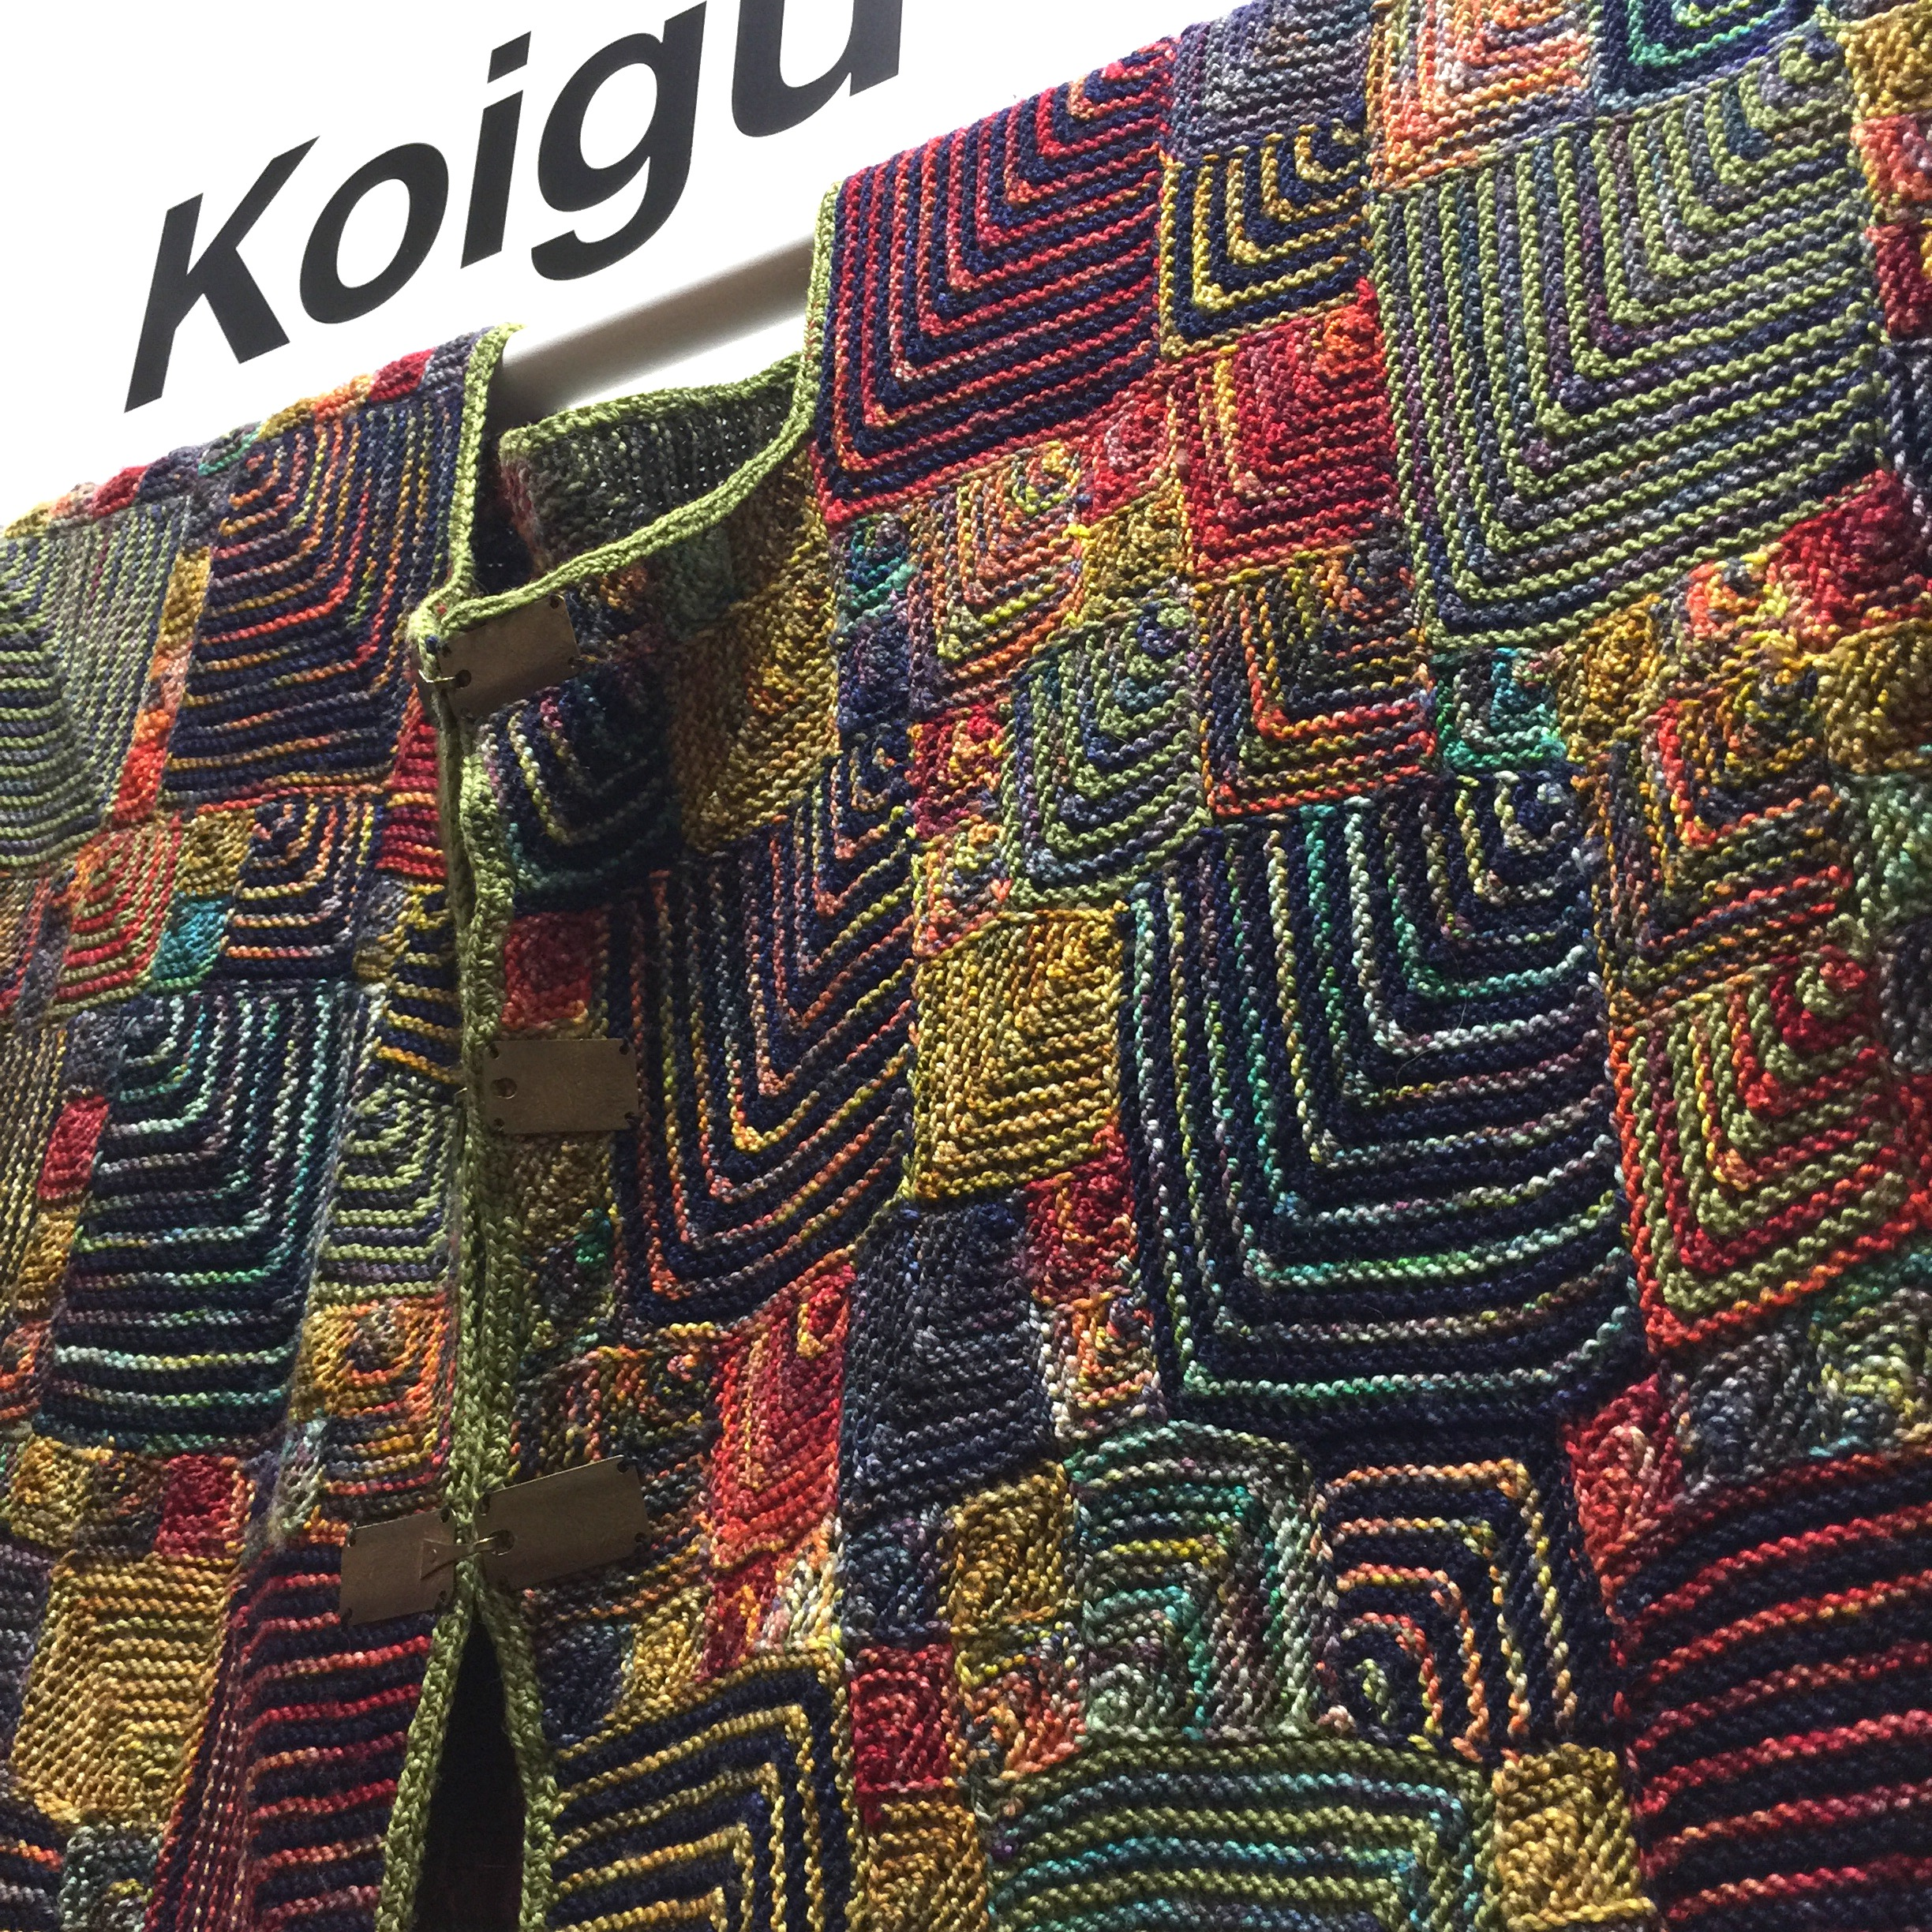 Koigu coat